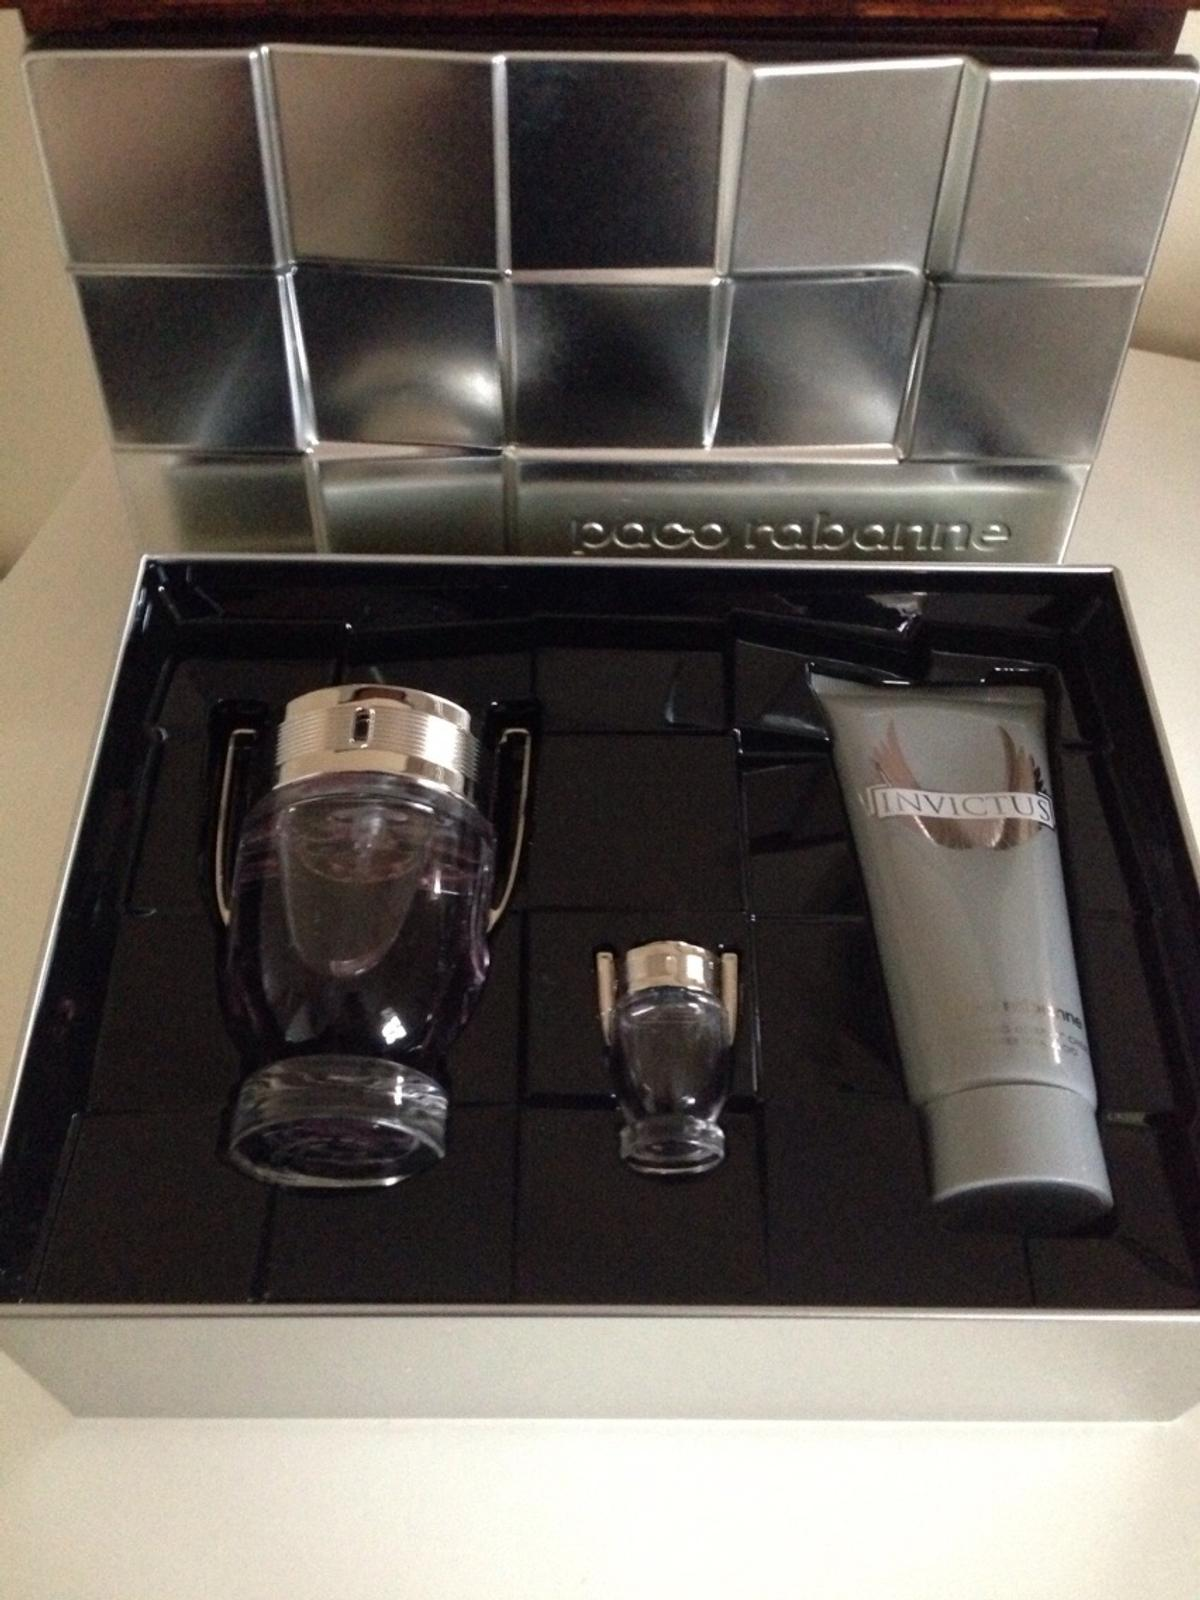 Paco Rabanne Invictus Gift Set Rrp 60 In M28 Salford For 5200 For